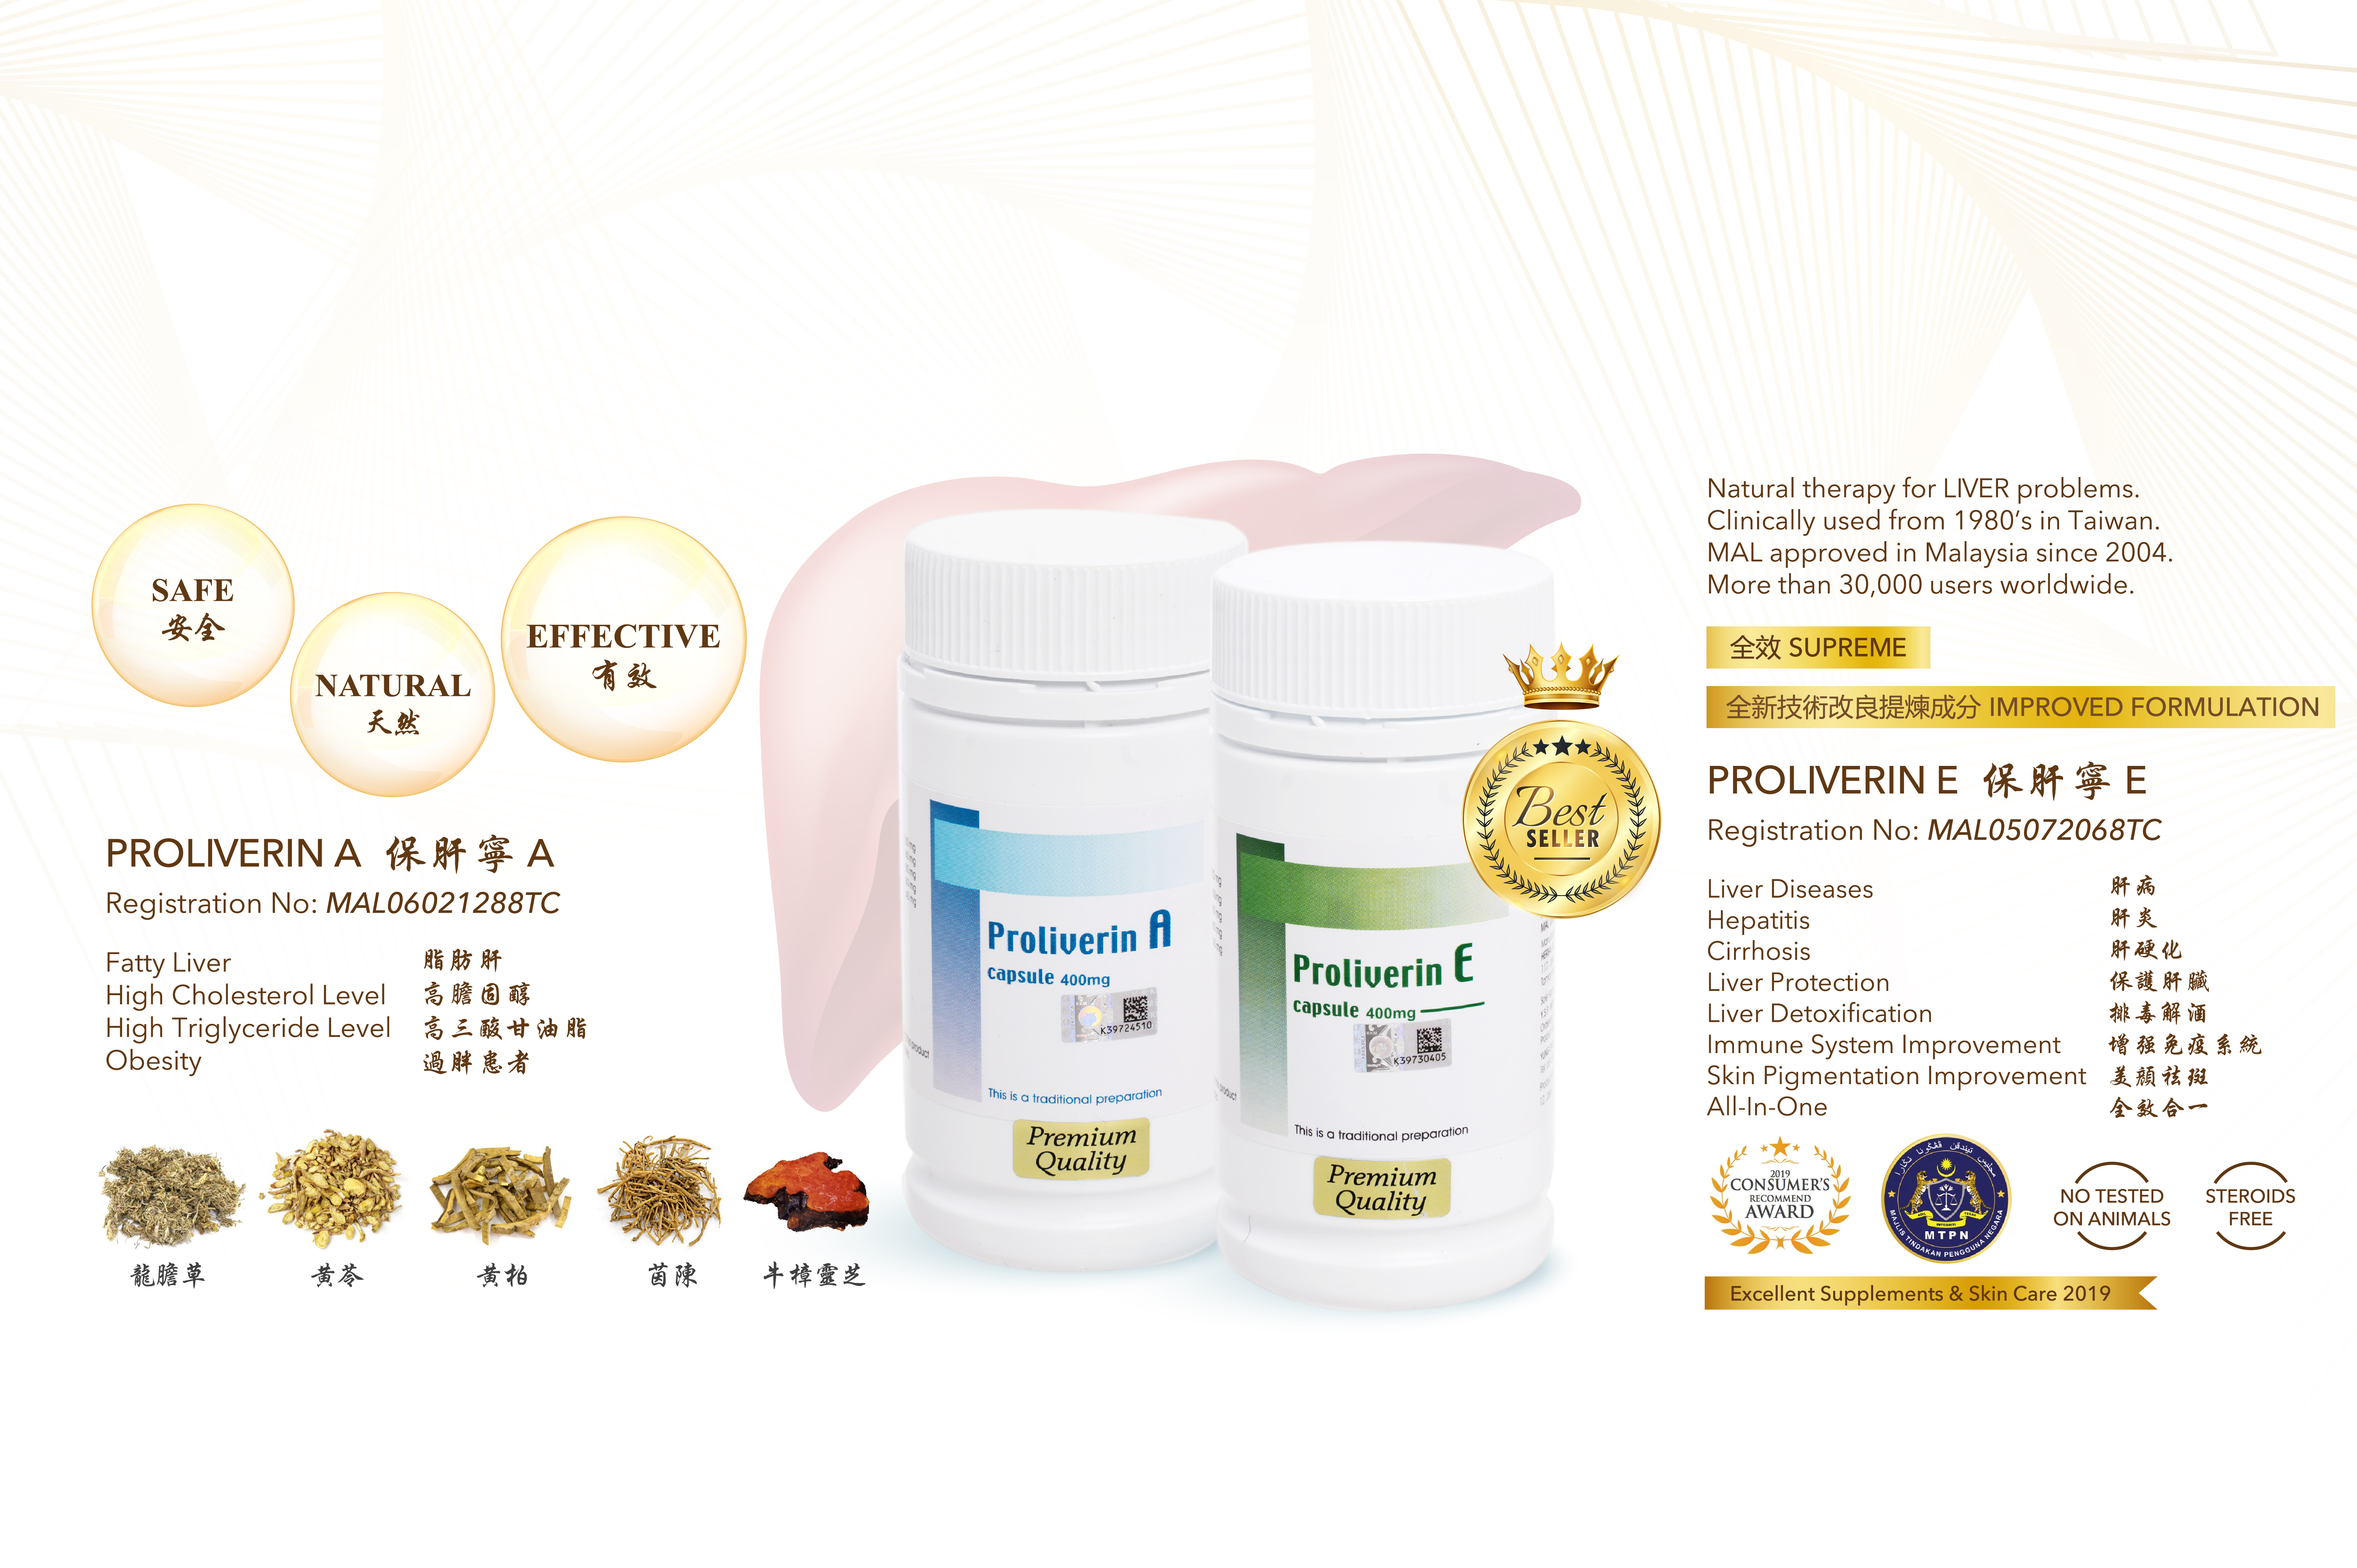 Han Secrets   Health Care and Beauty   Best Liver Herbal Supplement in Malaysia   Best Liver Disease Medicine in Malaysia   TCM Kuala Lumpur  